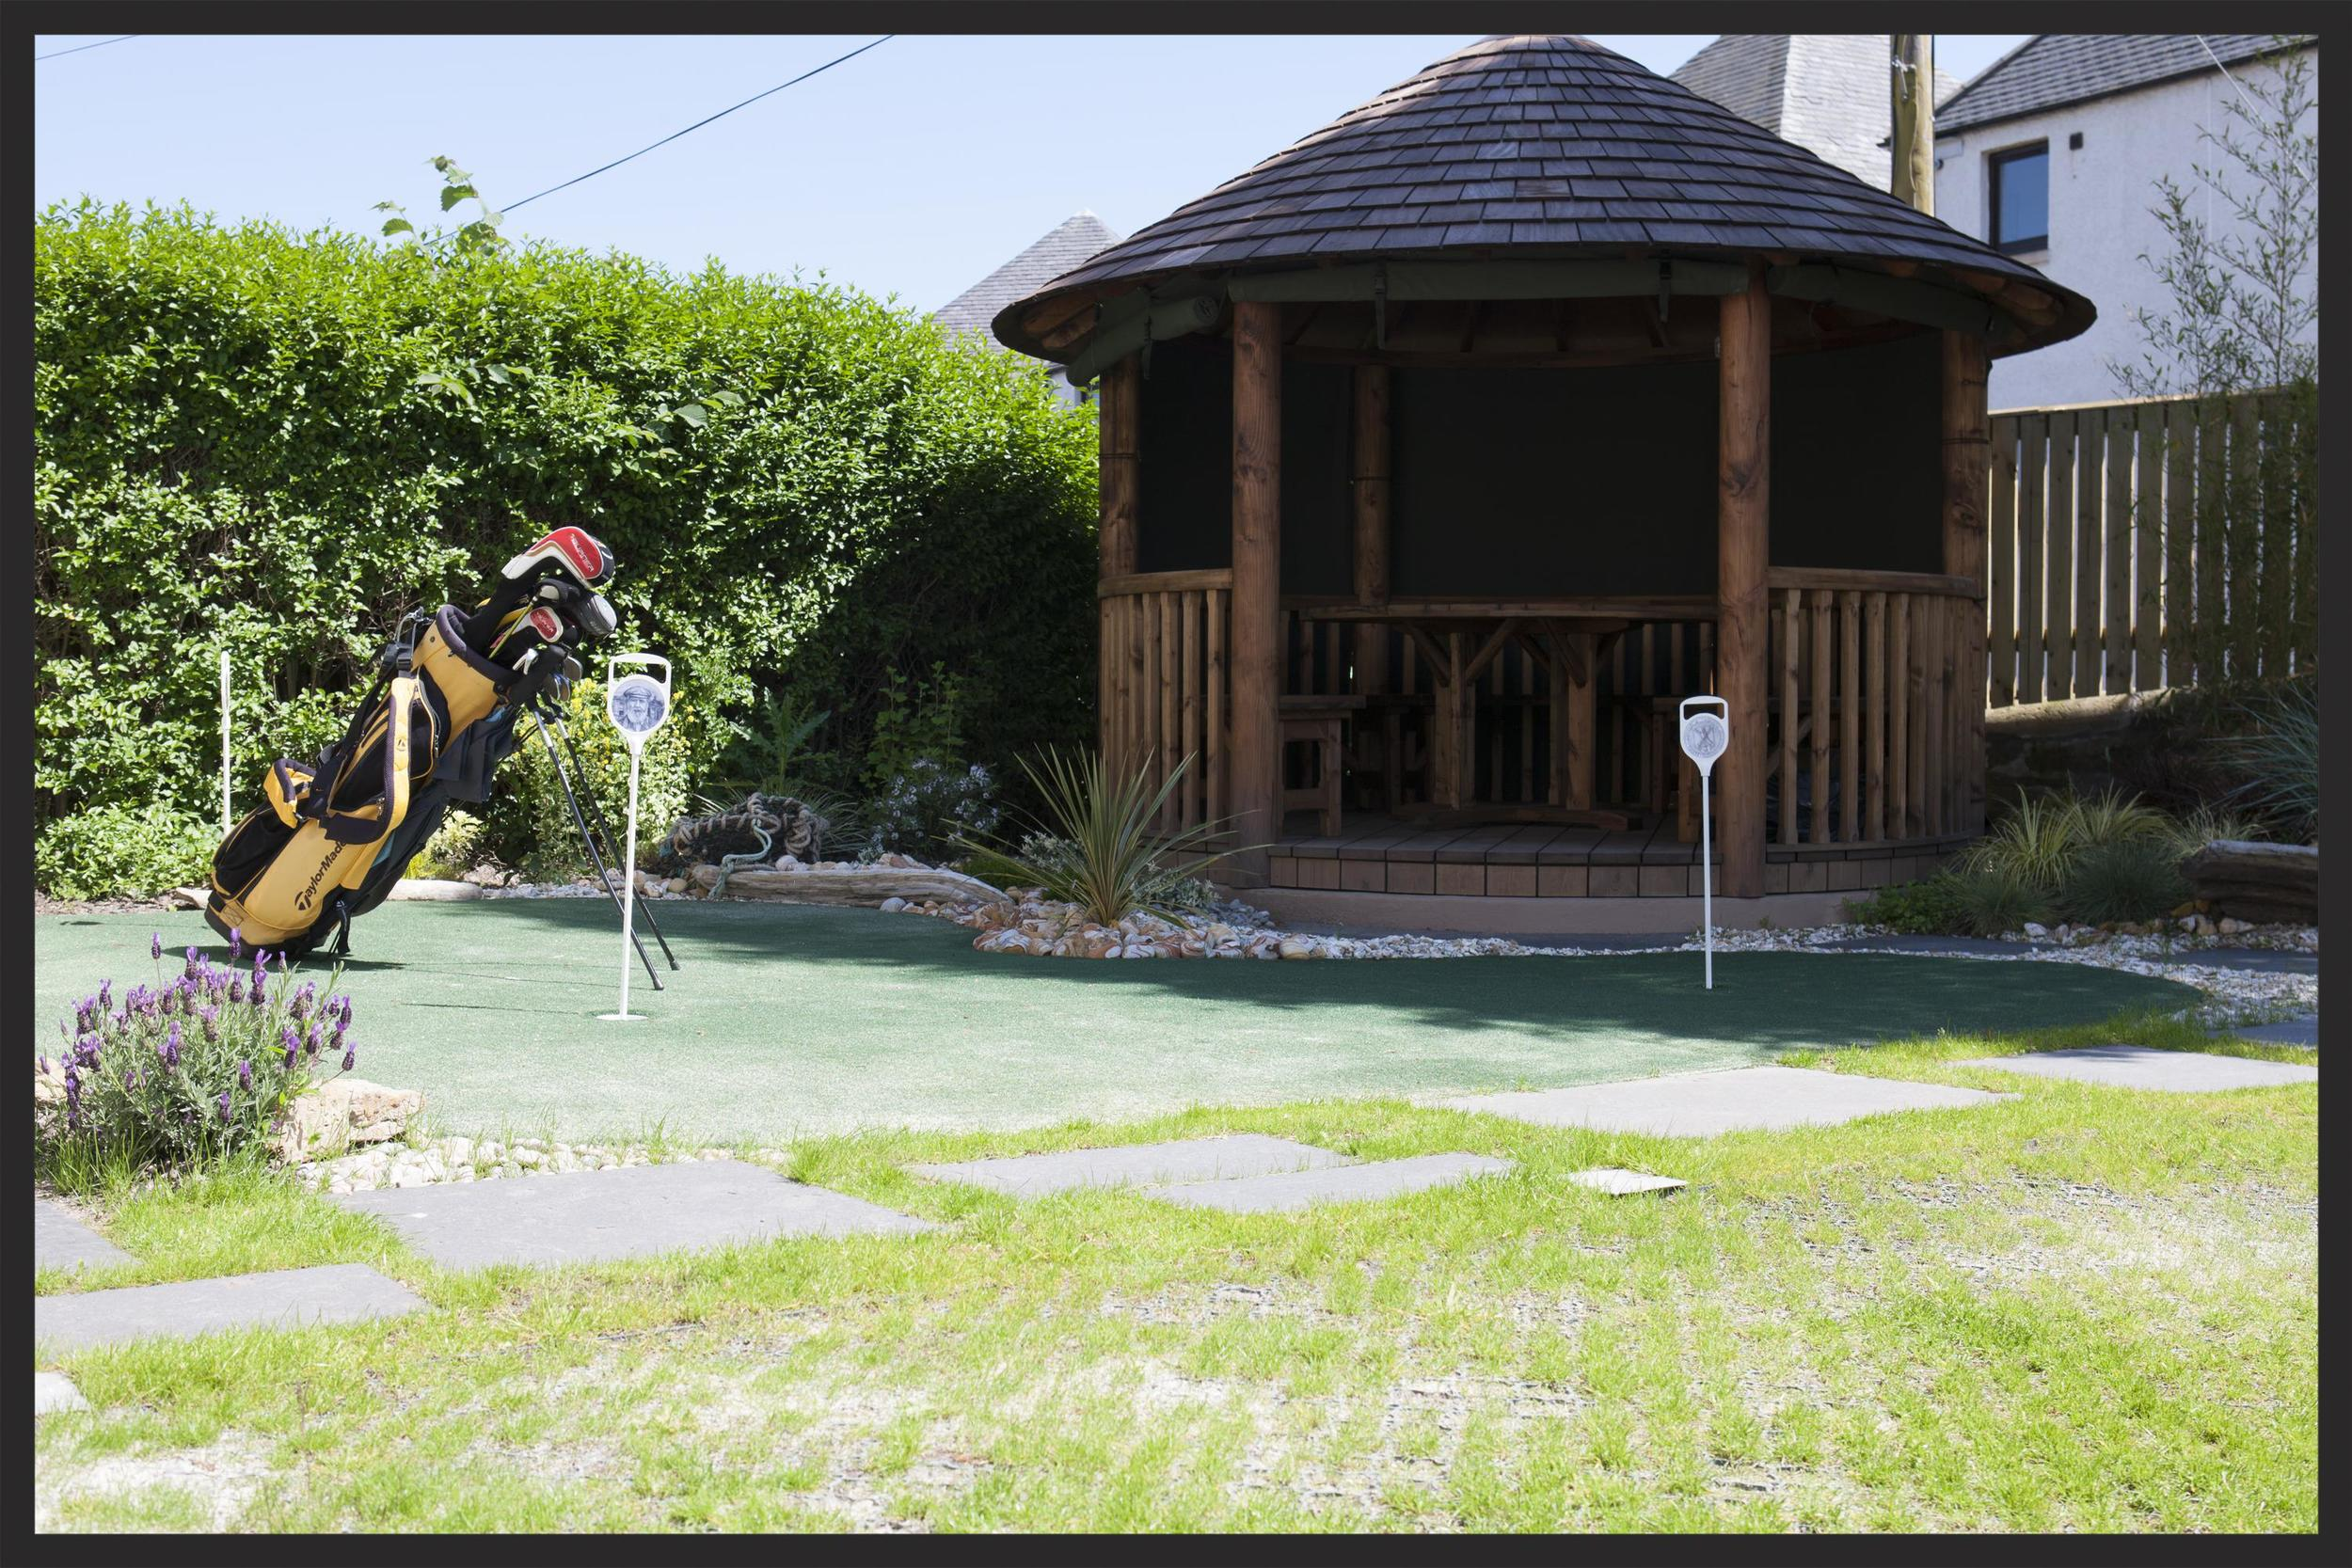 chris-mackenzie-photography-golf-house-06.jpg